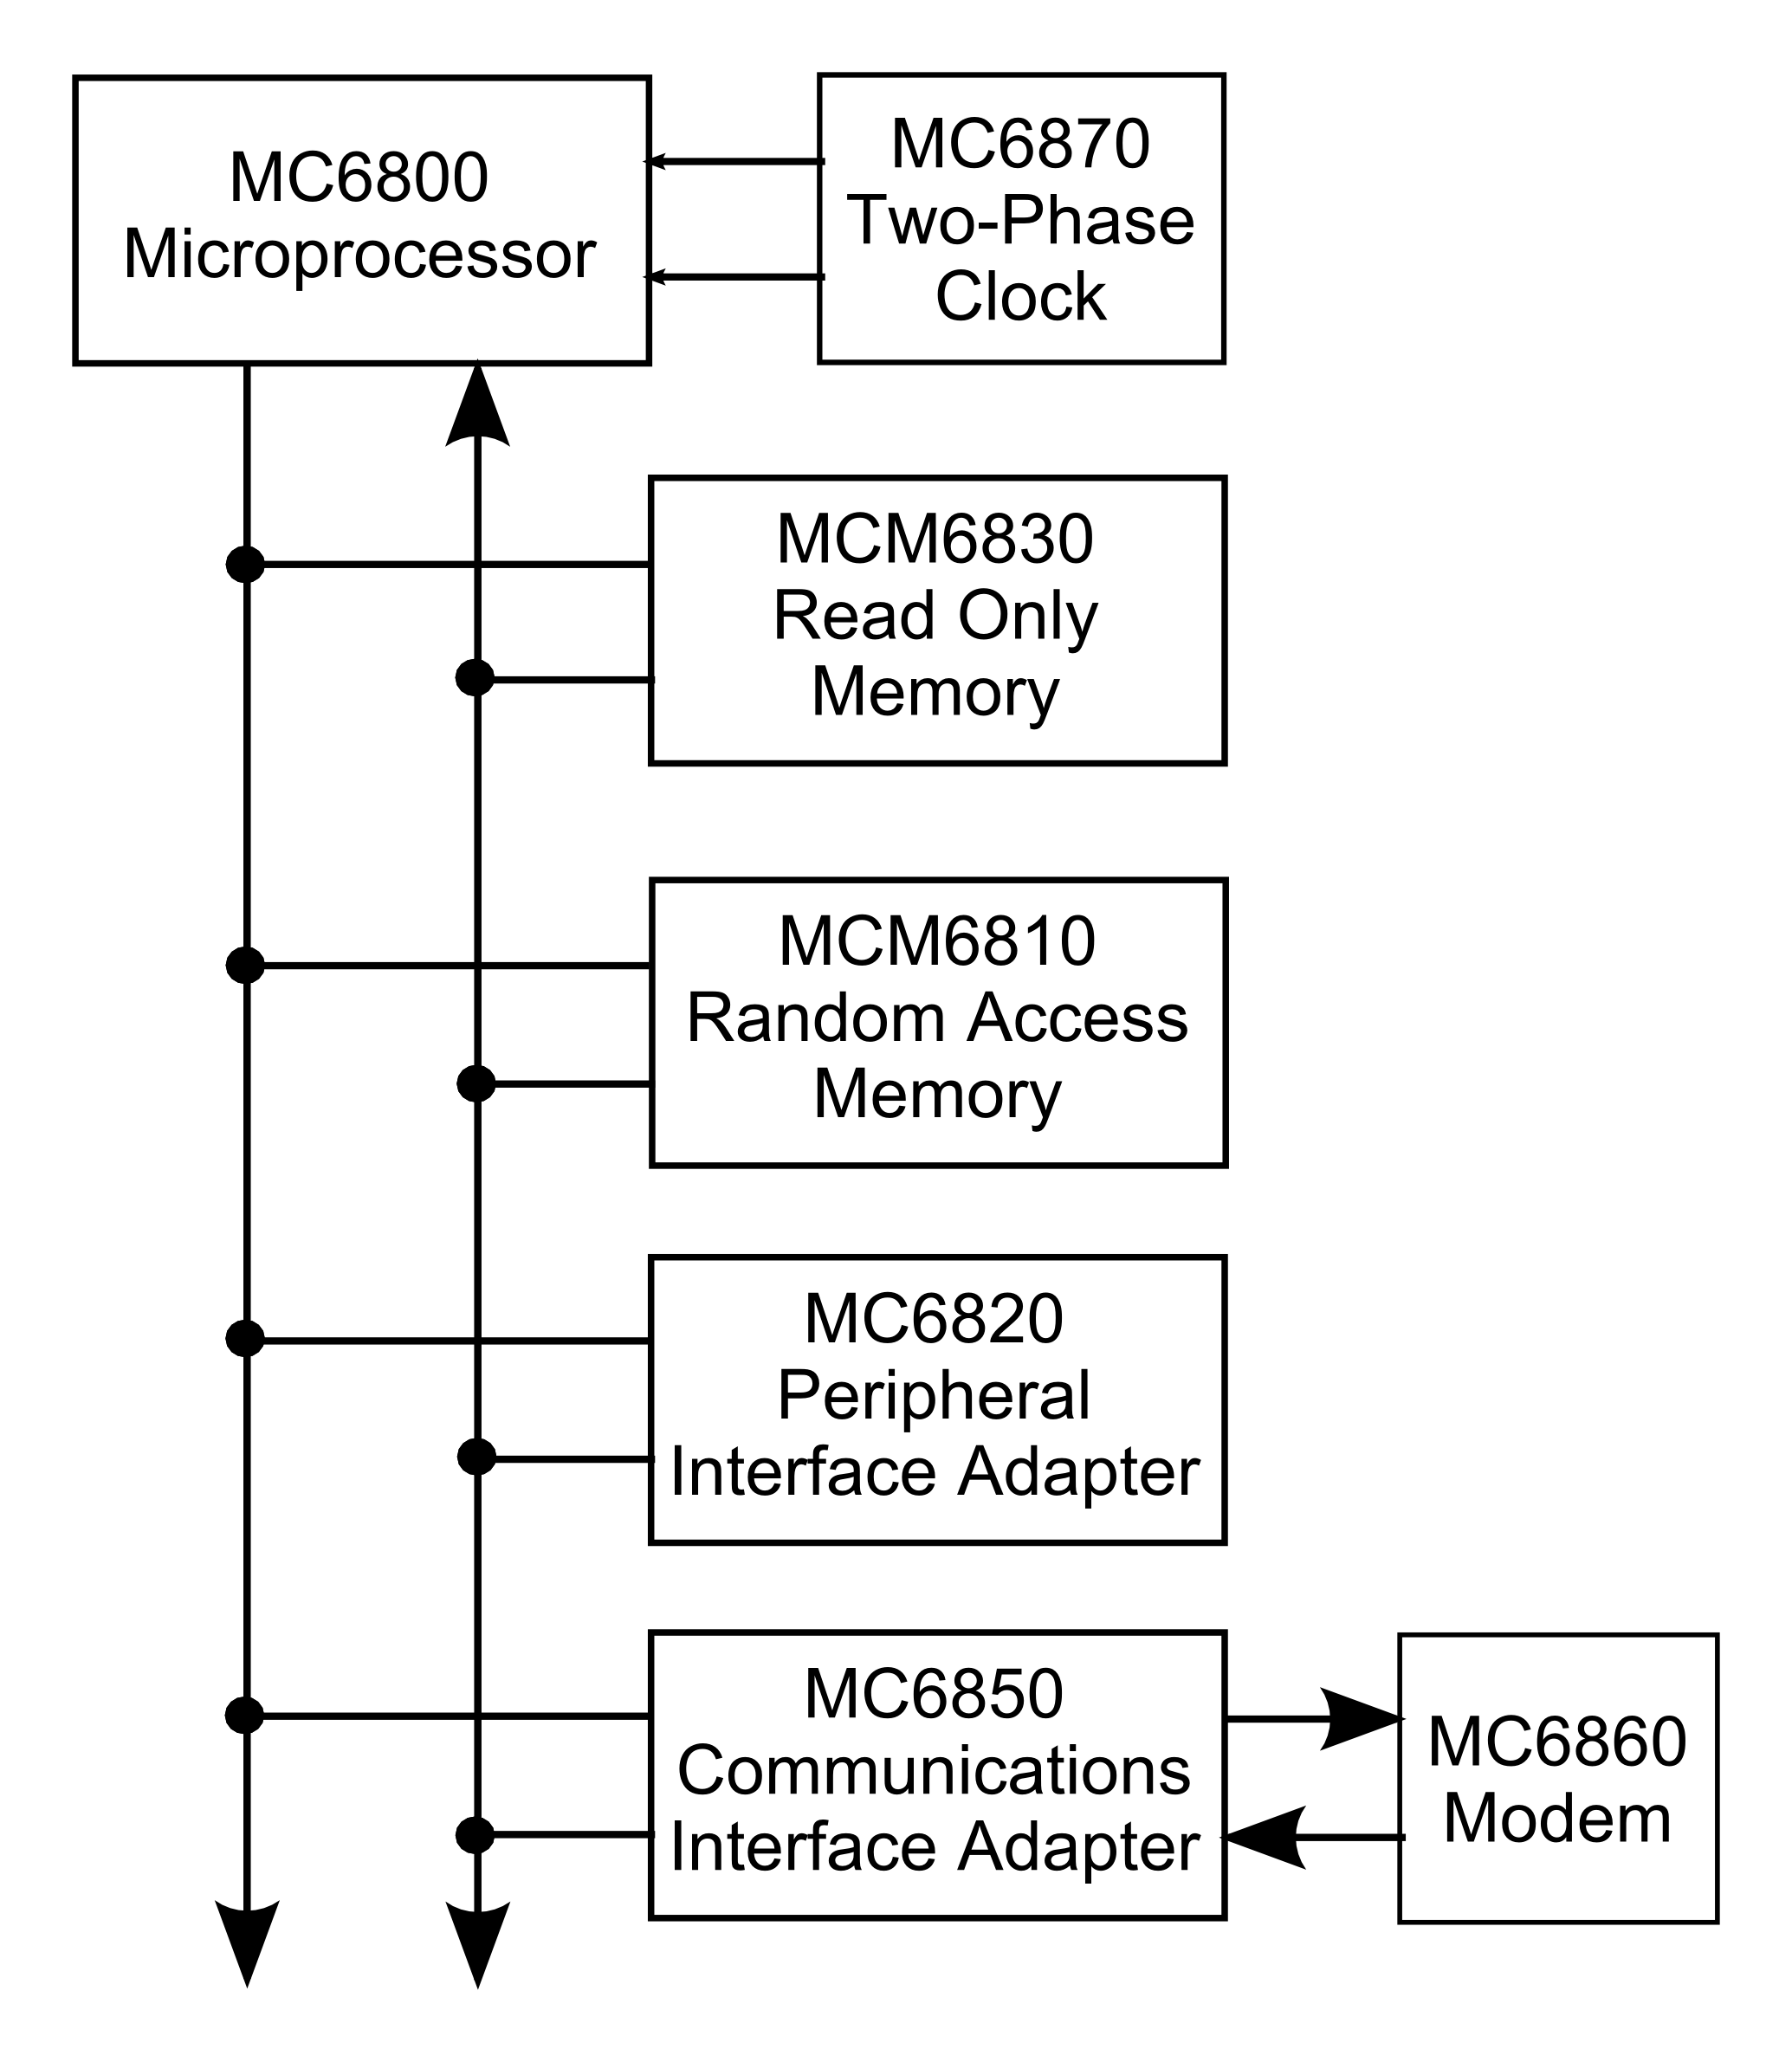 file m6800 family block diagram png wikimedia commons on Image Compression Block Diagram for file m6800 family block diagram png at power supply block diagram images